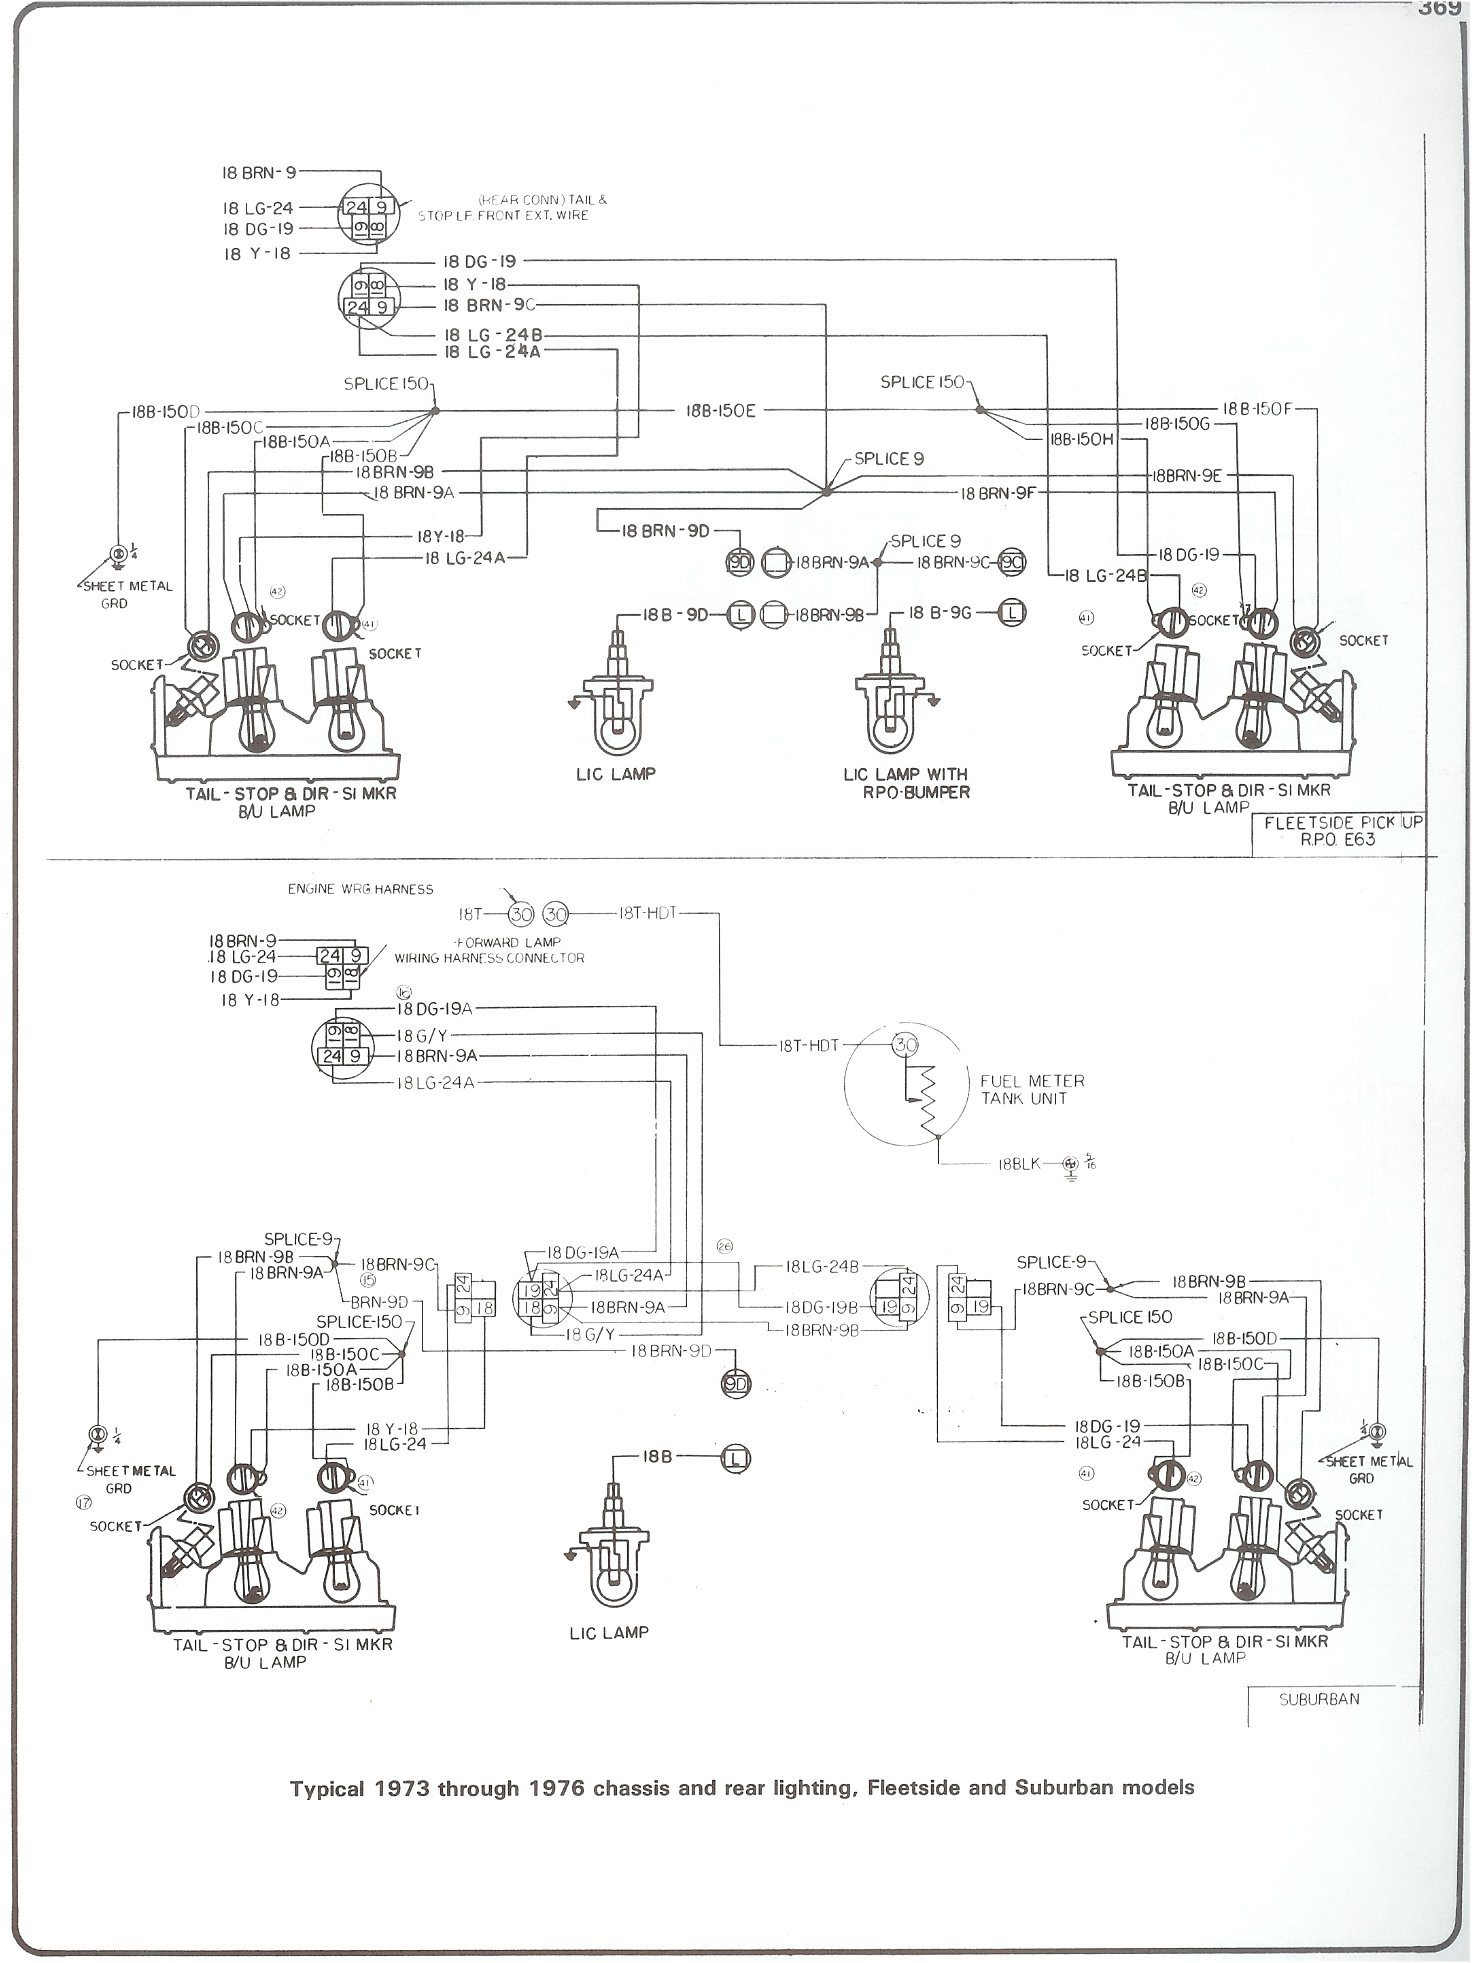 1988 Gmc 7000 Truck Starter Wiring Diagram Detailed Schematics Diagram 1989  Chevy Truck Dash 1989 Chevy Truck Wiring Lights